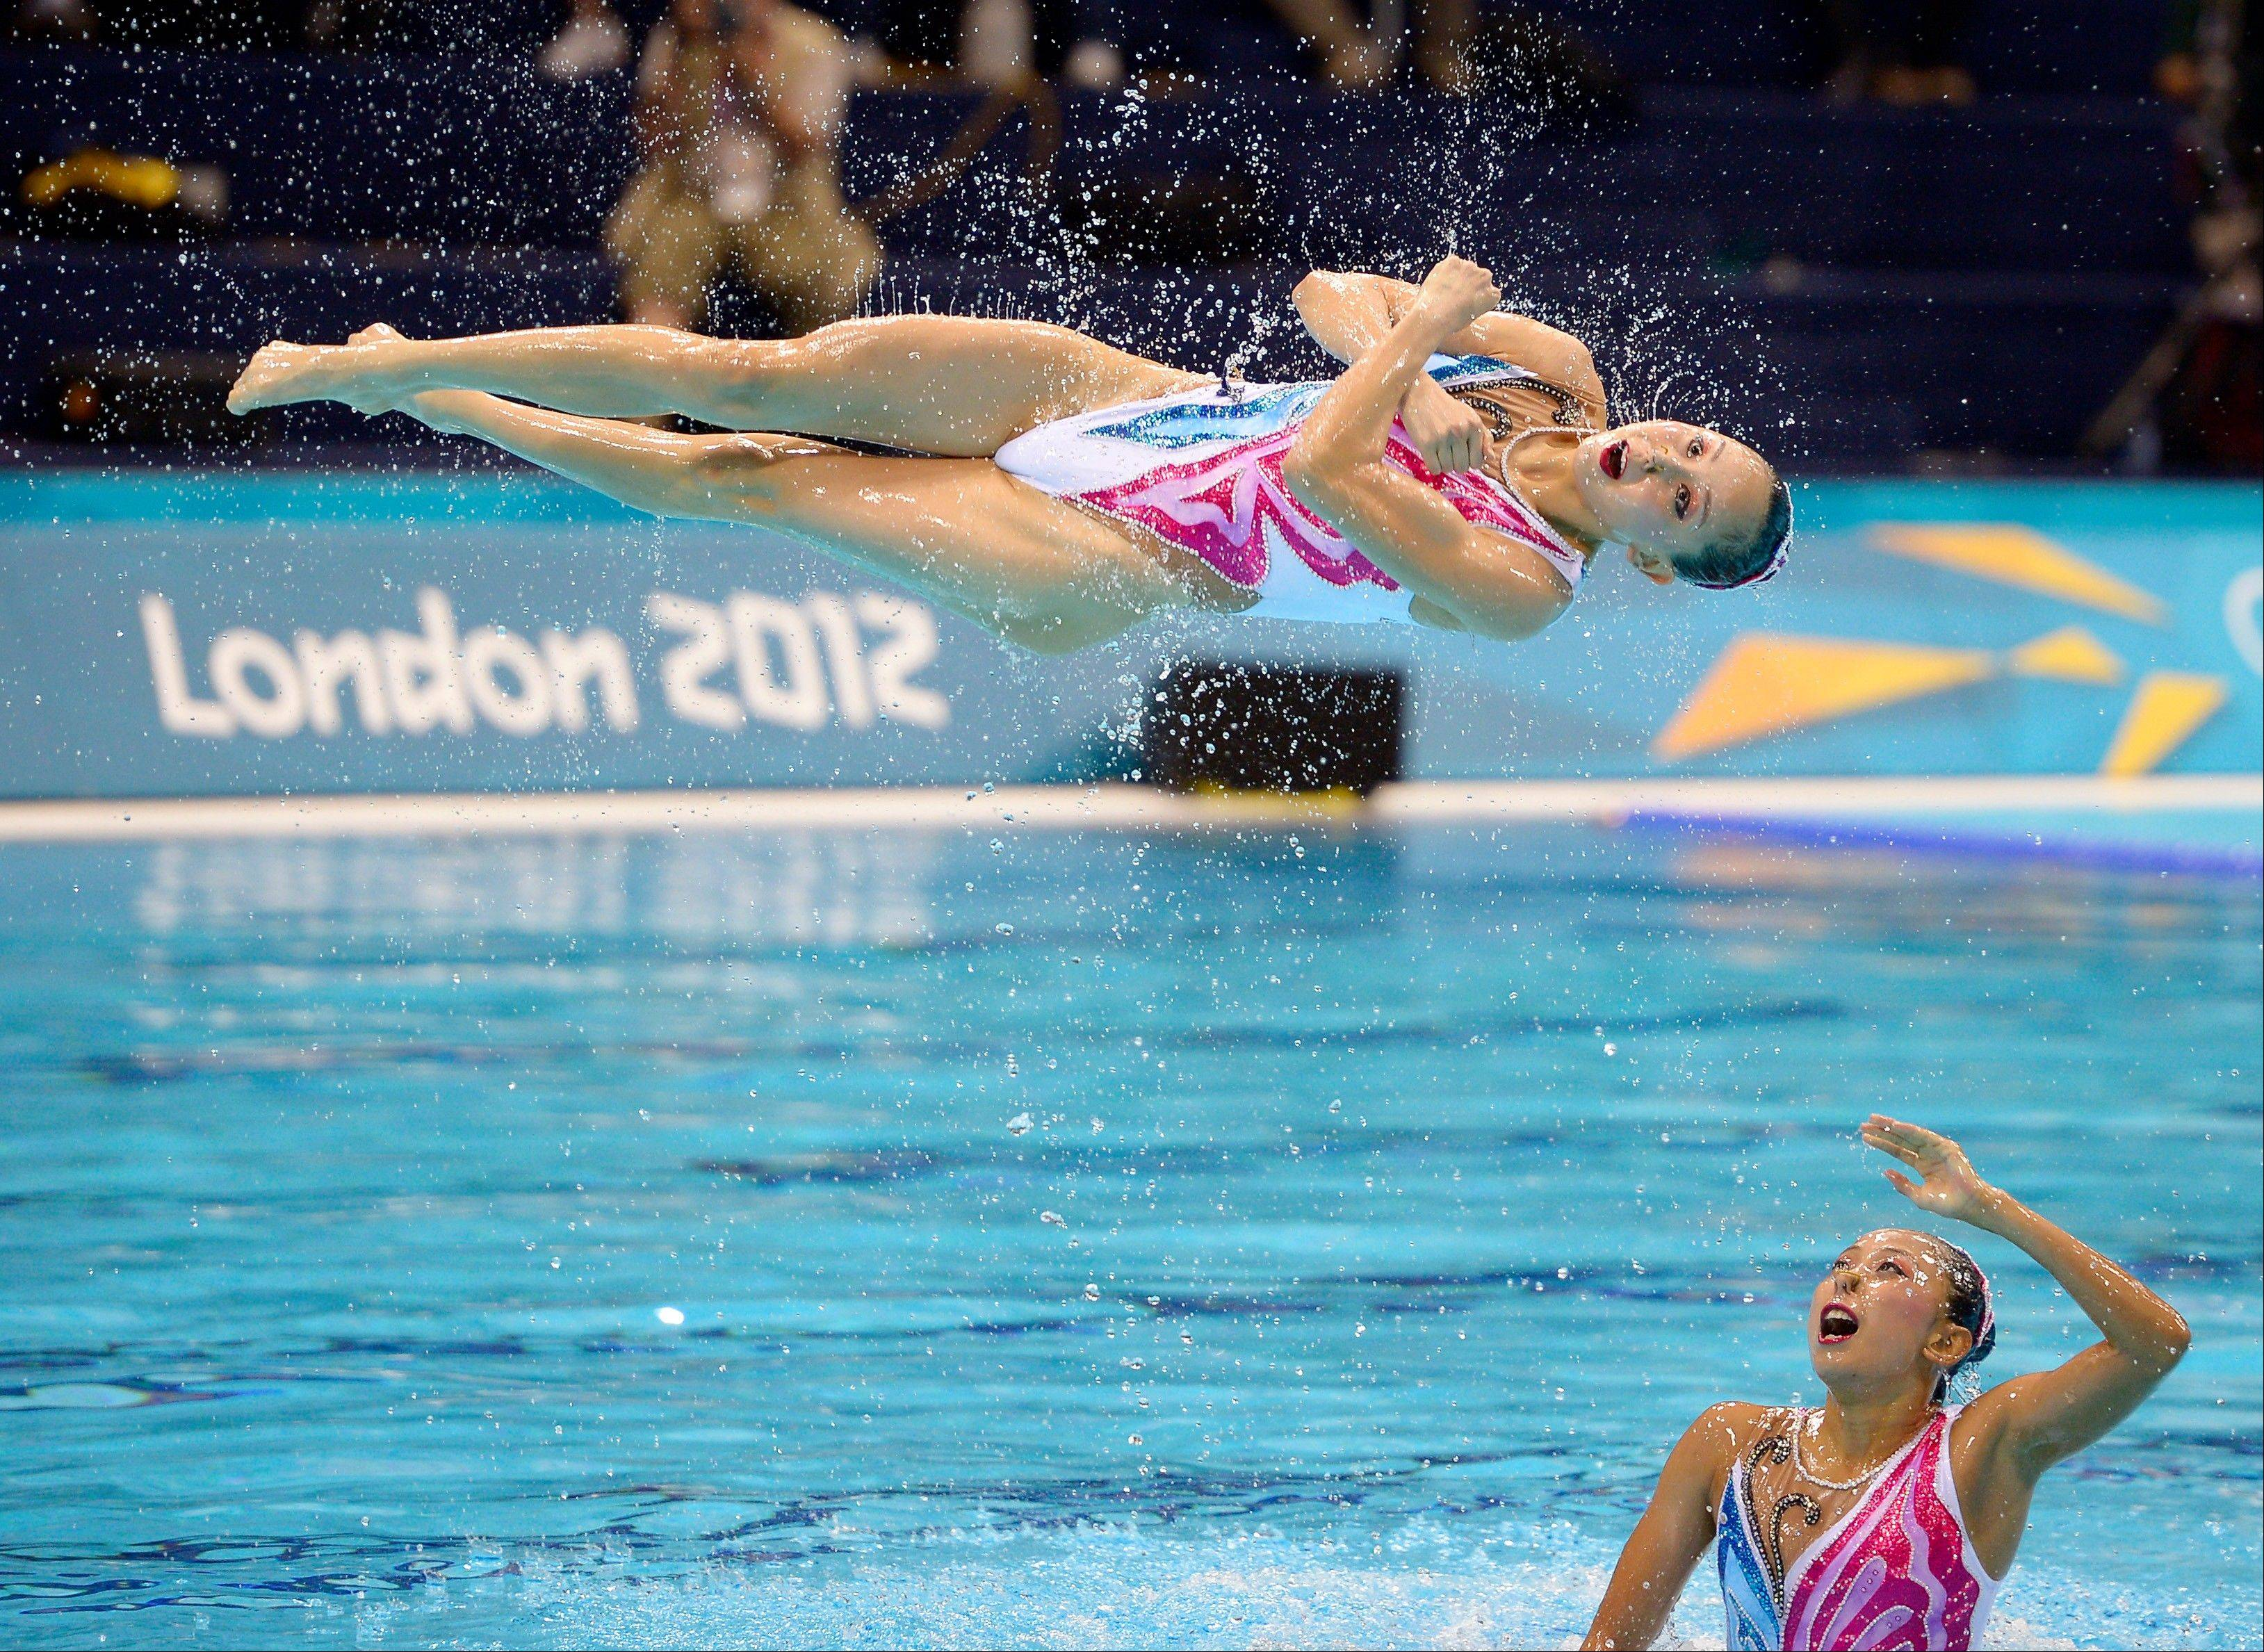 The team from China competes during the synchronized swimming team free routine final at the Aquatics Centre in the Olympic Park during the 2012 Summer Olympics in London, Friday, Aug. 10, 2012. China took the silver medal in the event.